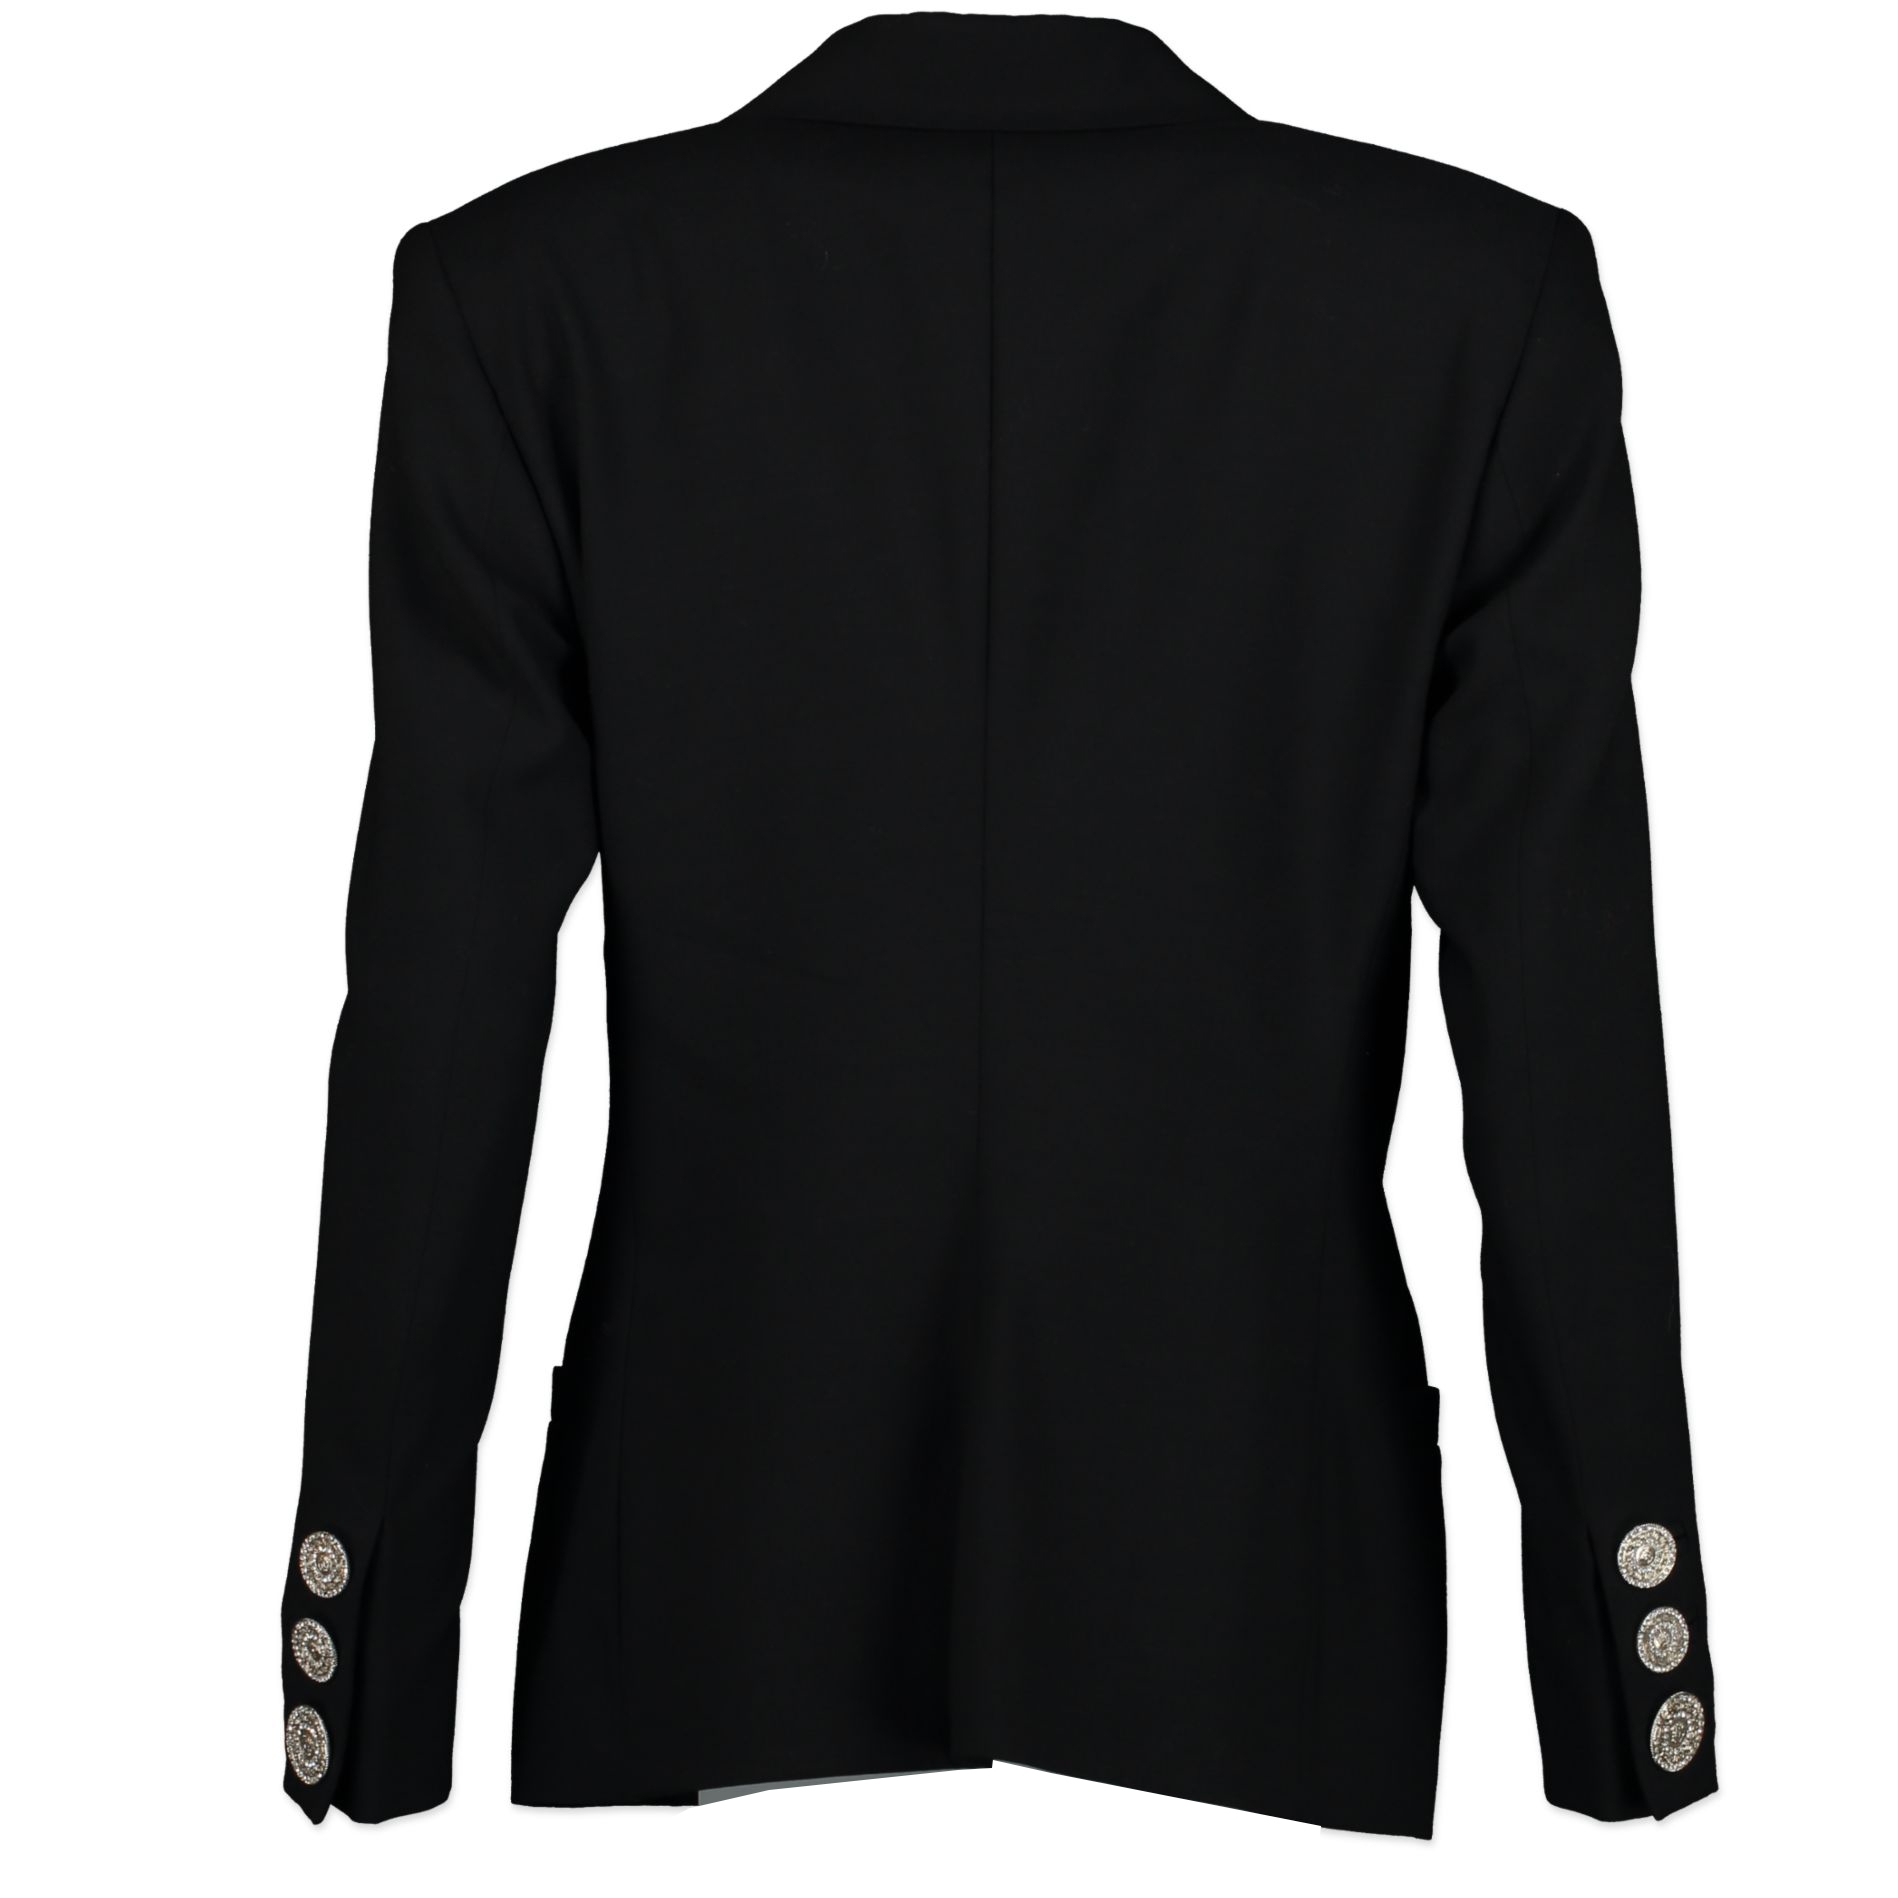 Versace Black Medusa Heads Buttons blazer for sale online at Labellov secondhand luxury in Antwerp